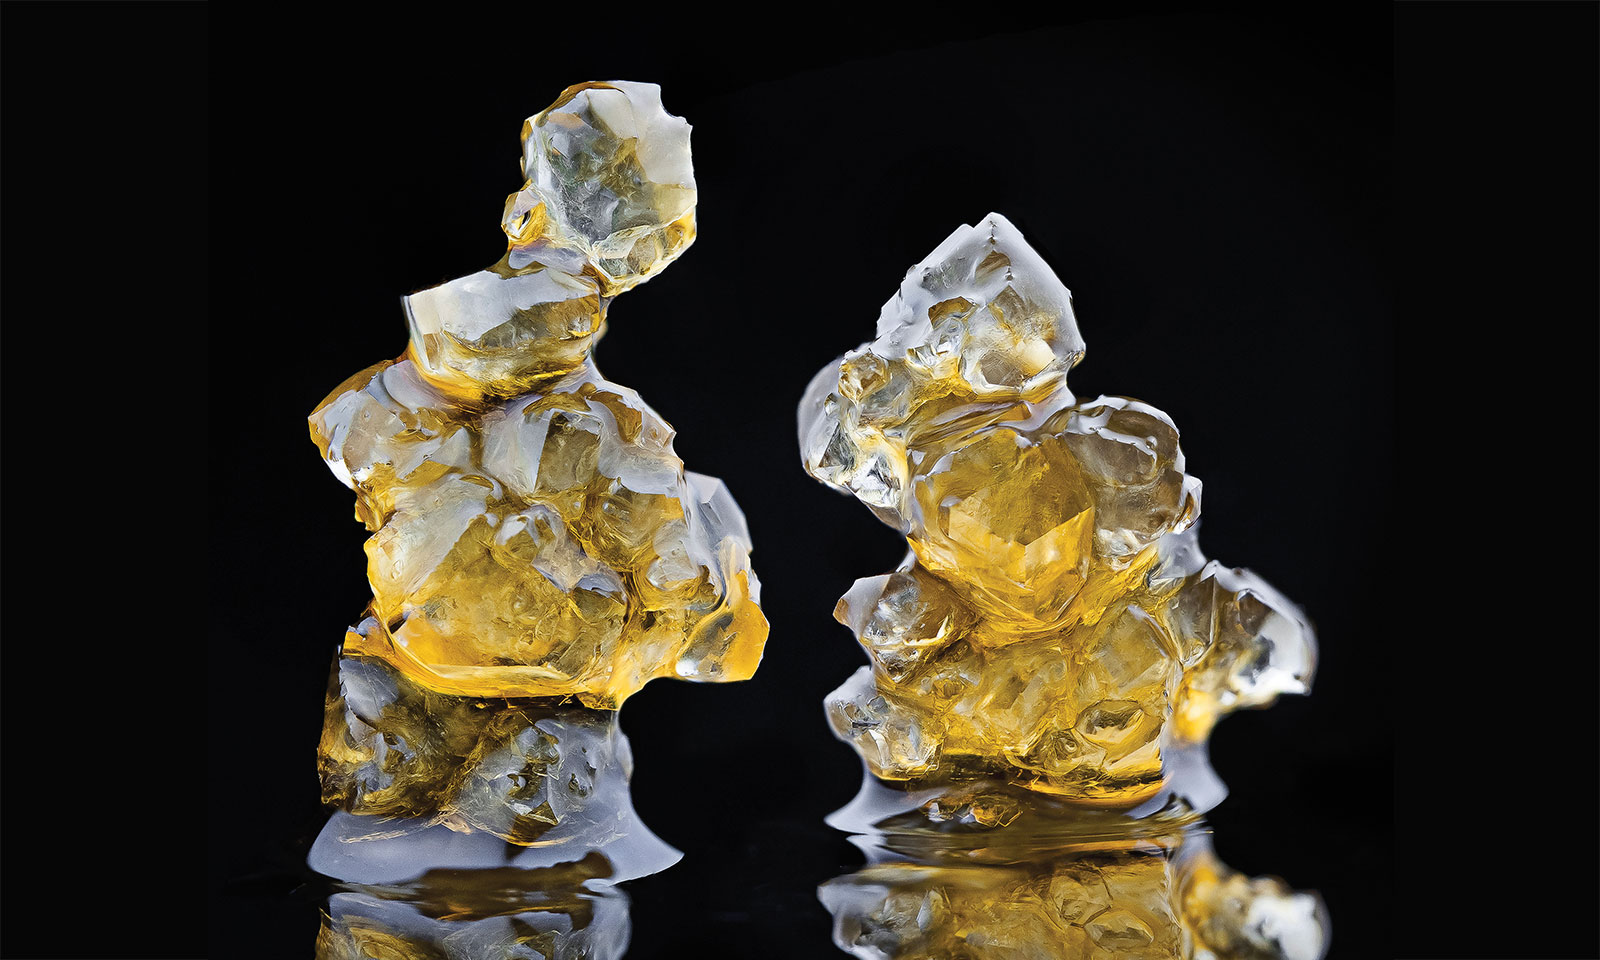 A Photographer's Journey Inside the Super-Shiny World of THCA Diamonds